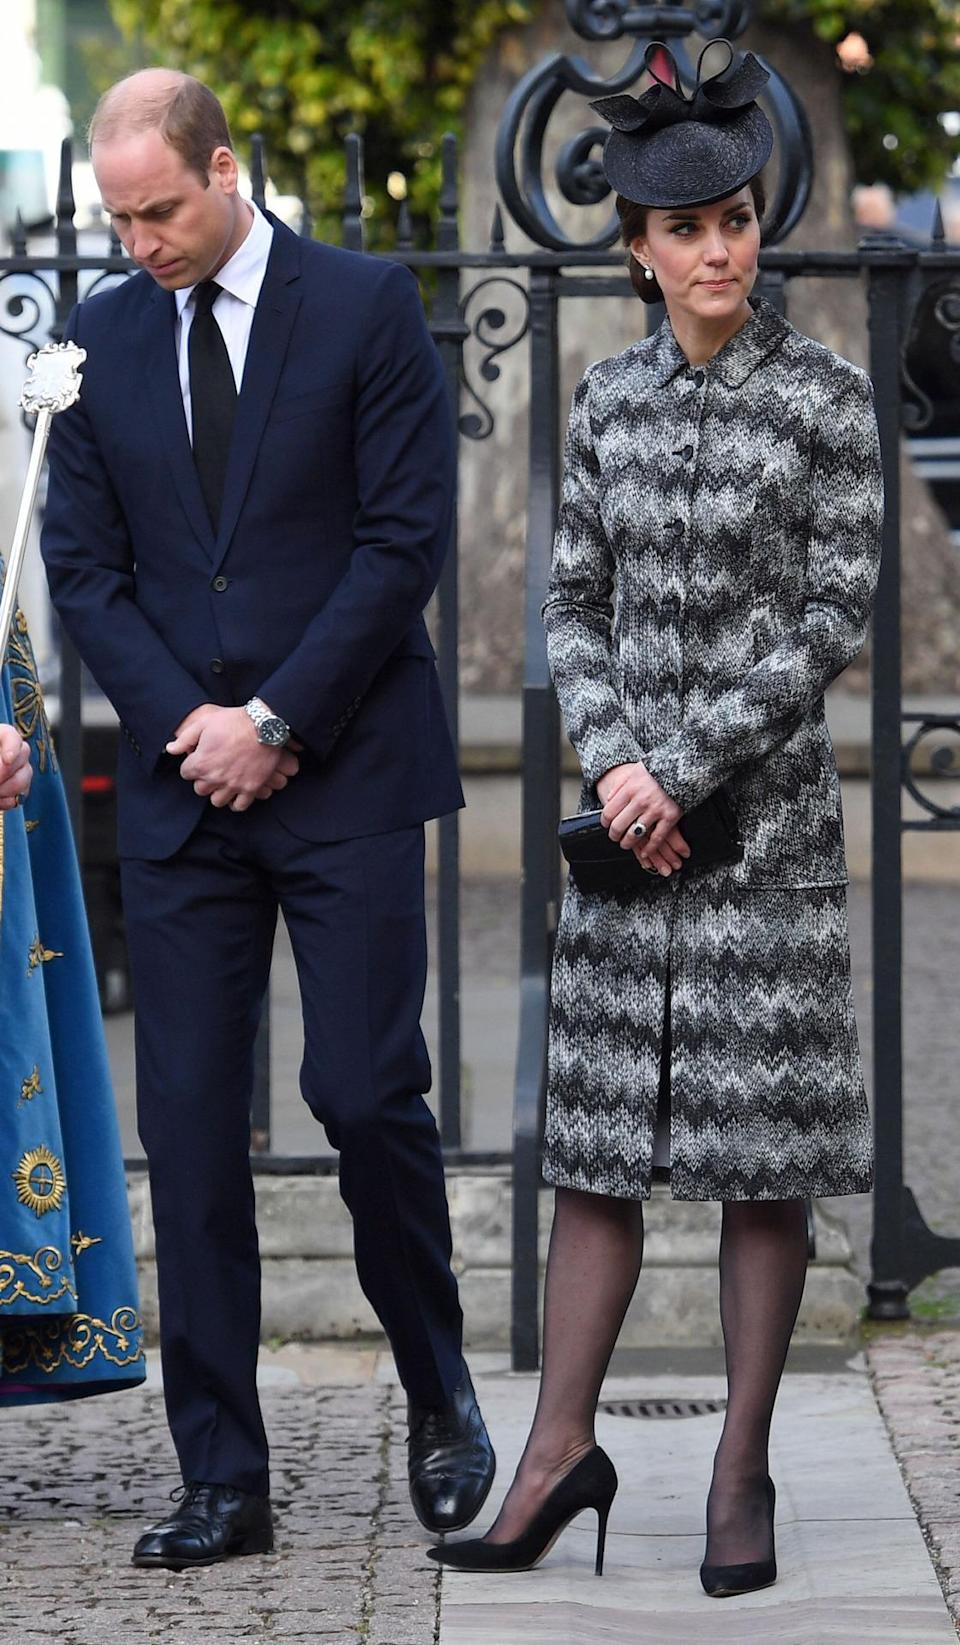 <p>The Duchess chose a suitably sombre look for a memorial service remembering the victims of the Westminster attack. She wore a zig-zag printed coat by Missoni (costing £2900) with a bow-topped black hat. A black clutch and heeled pumps added to the dark ensemble.</p><p><i>[Photo: PA]</i> </p>